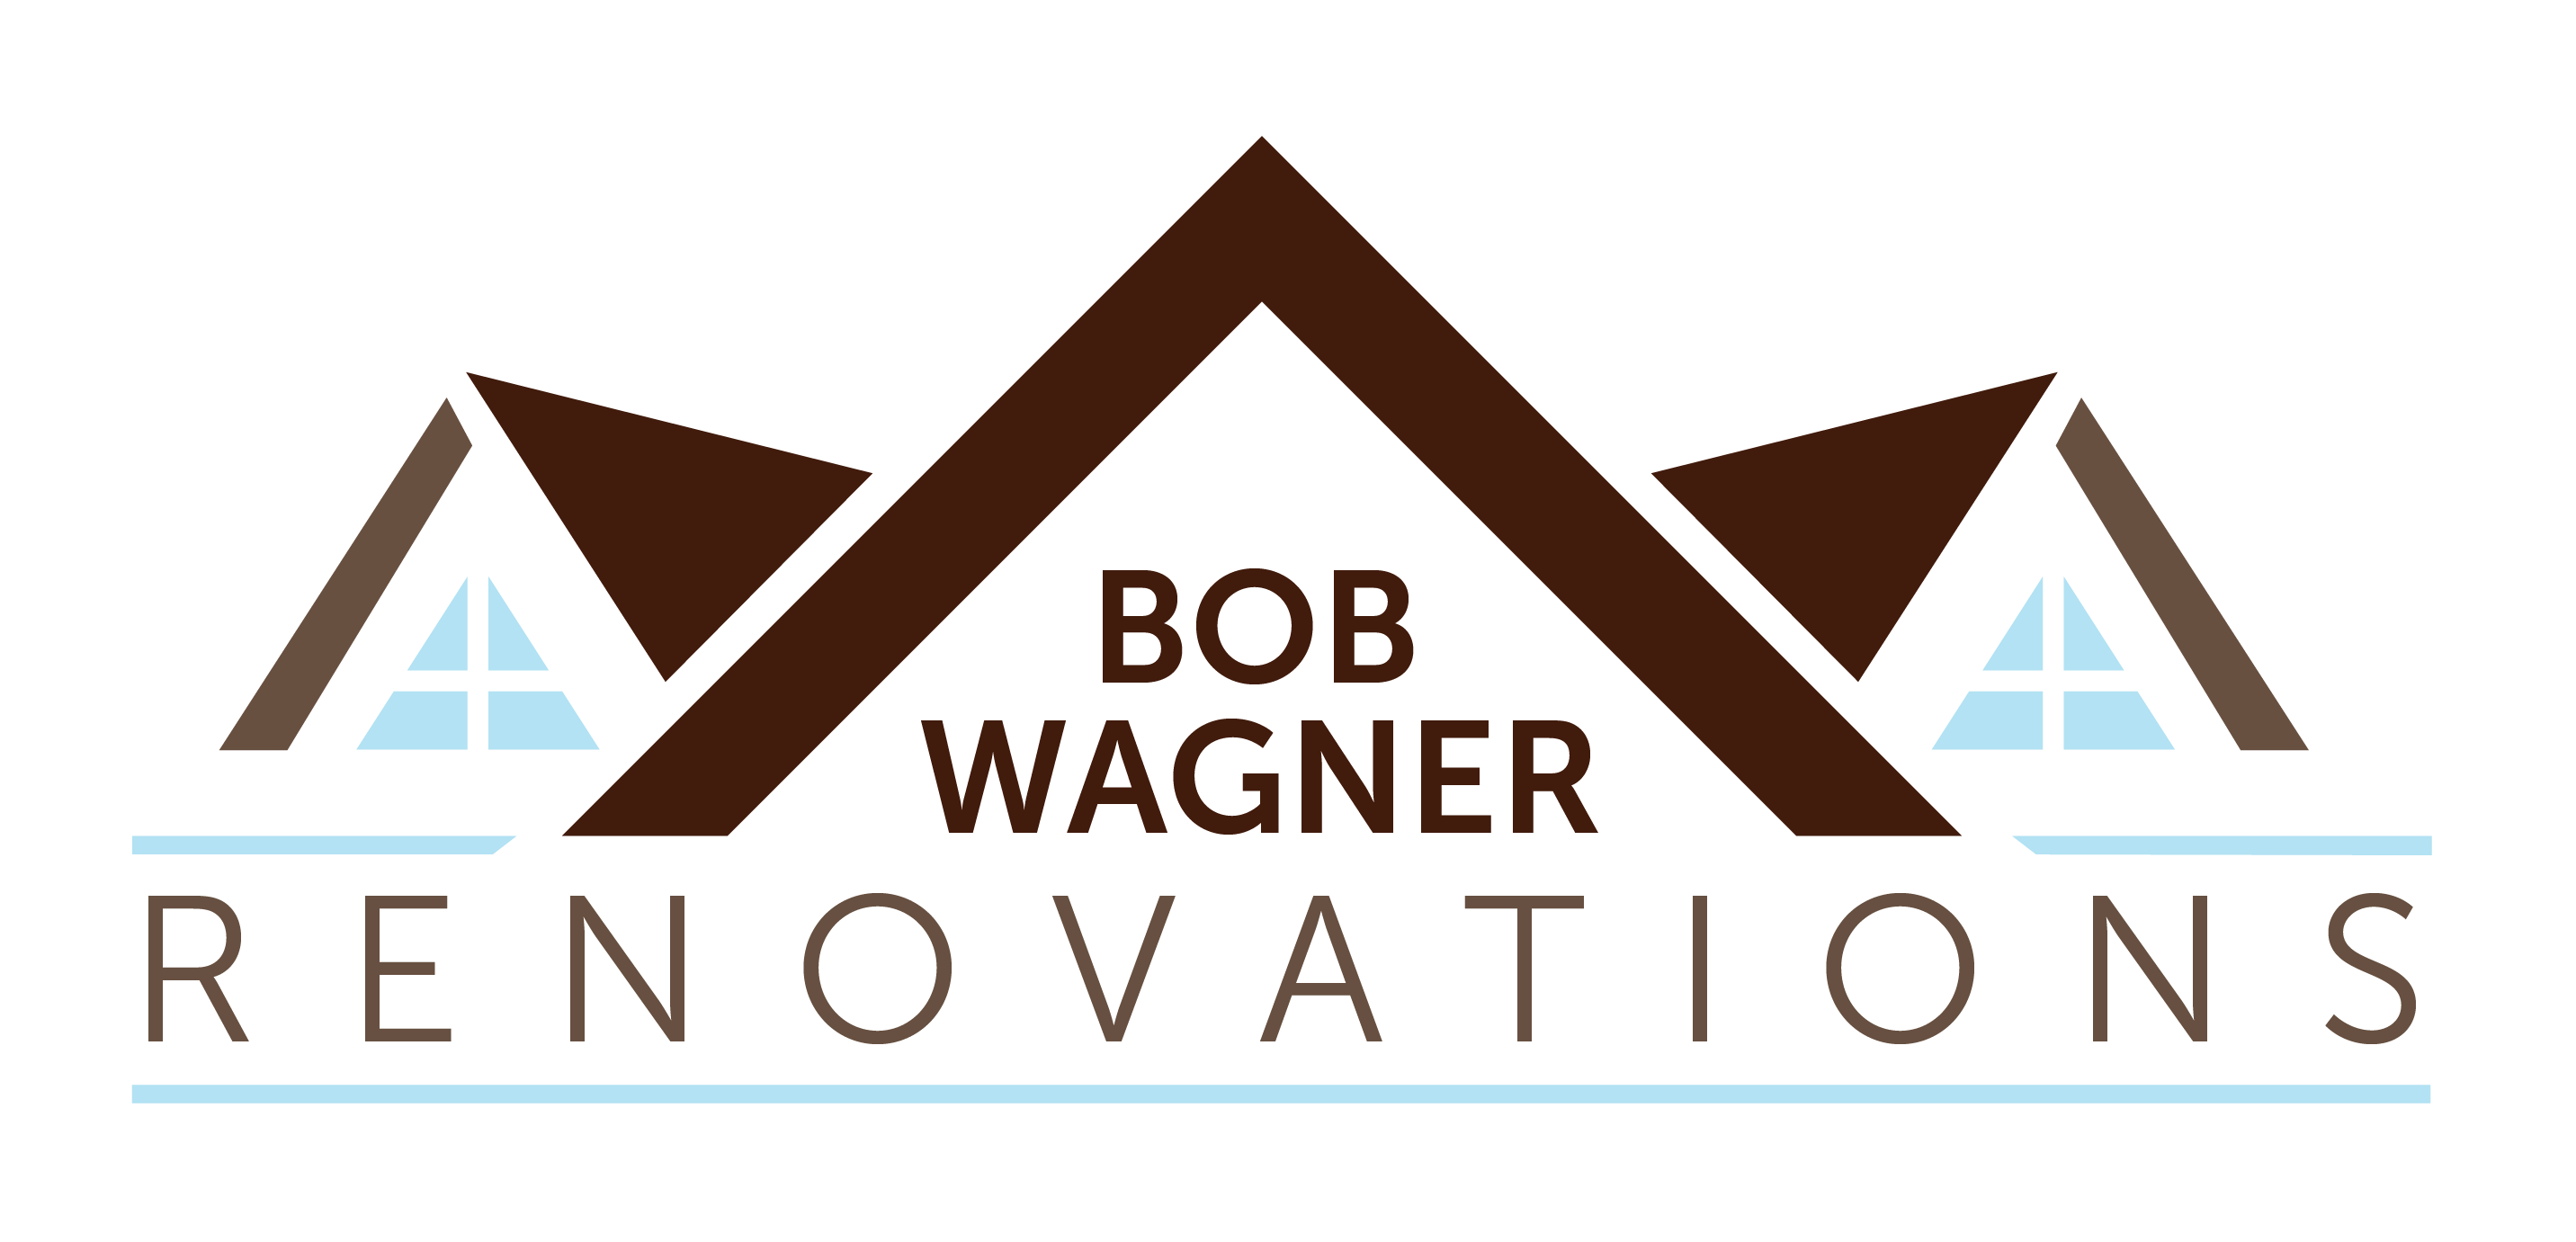 BOBWAGNERRENOVATIONS